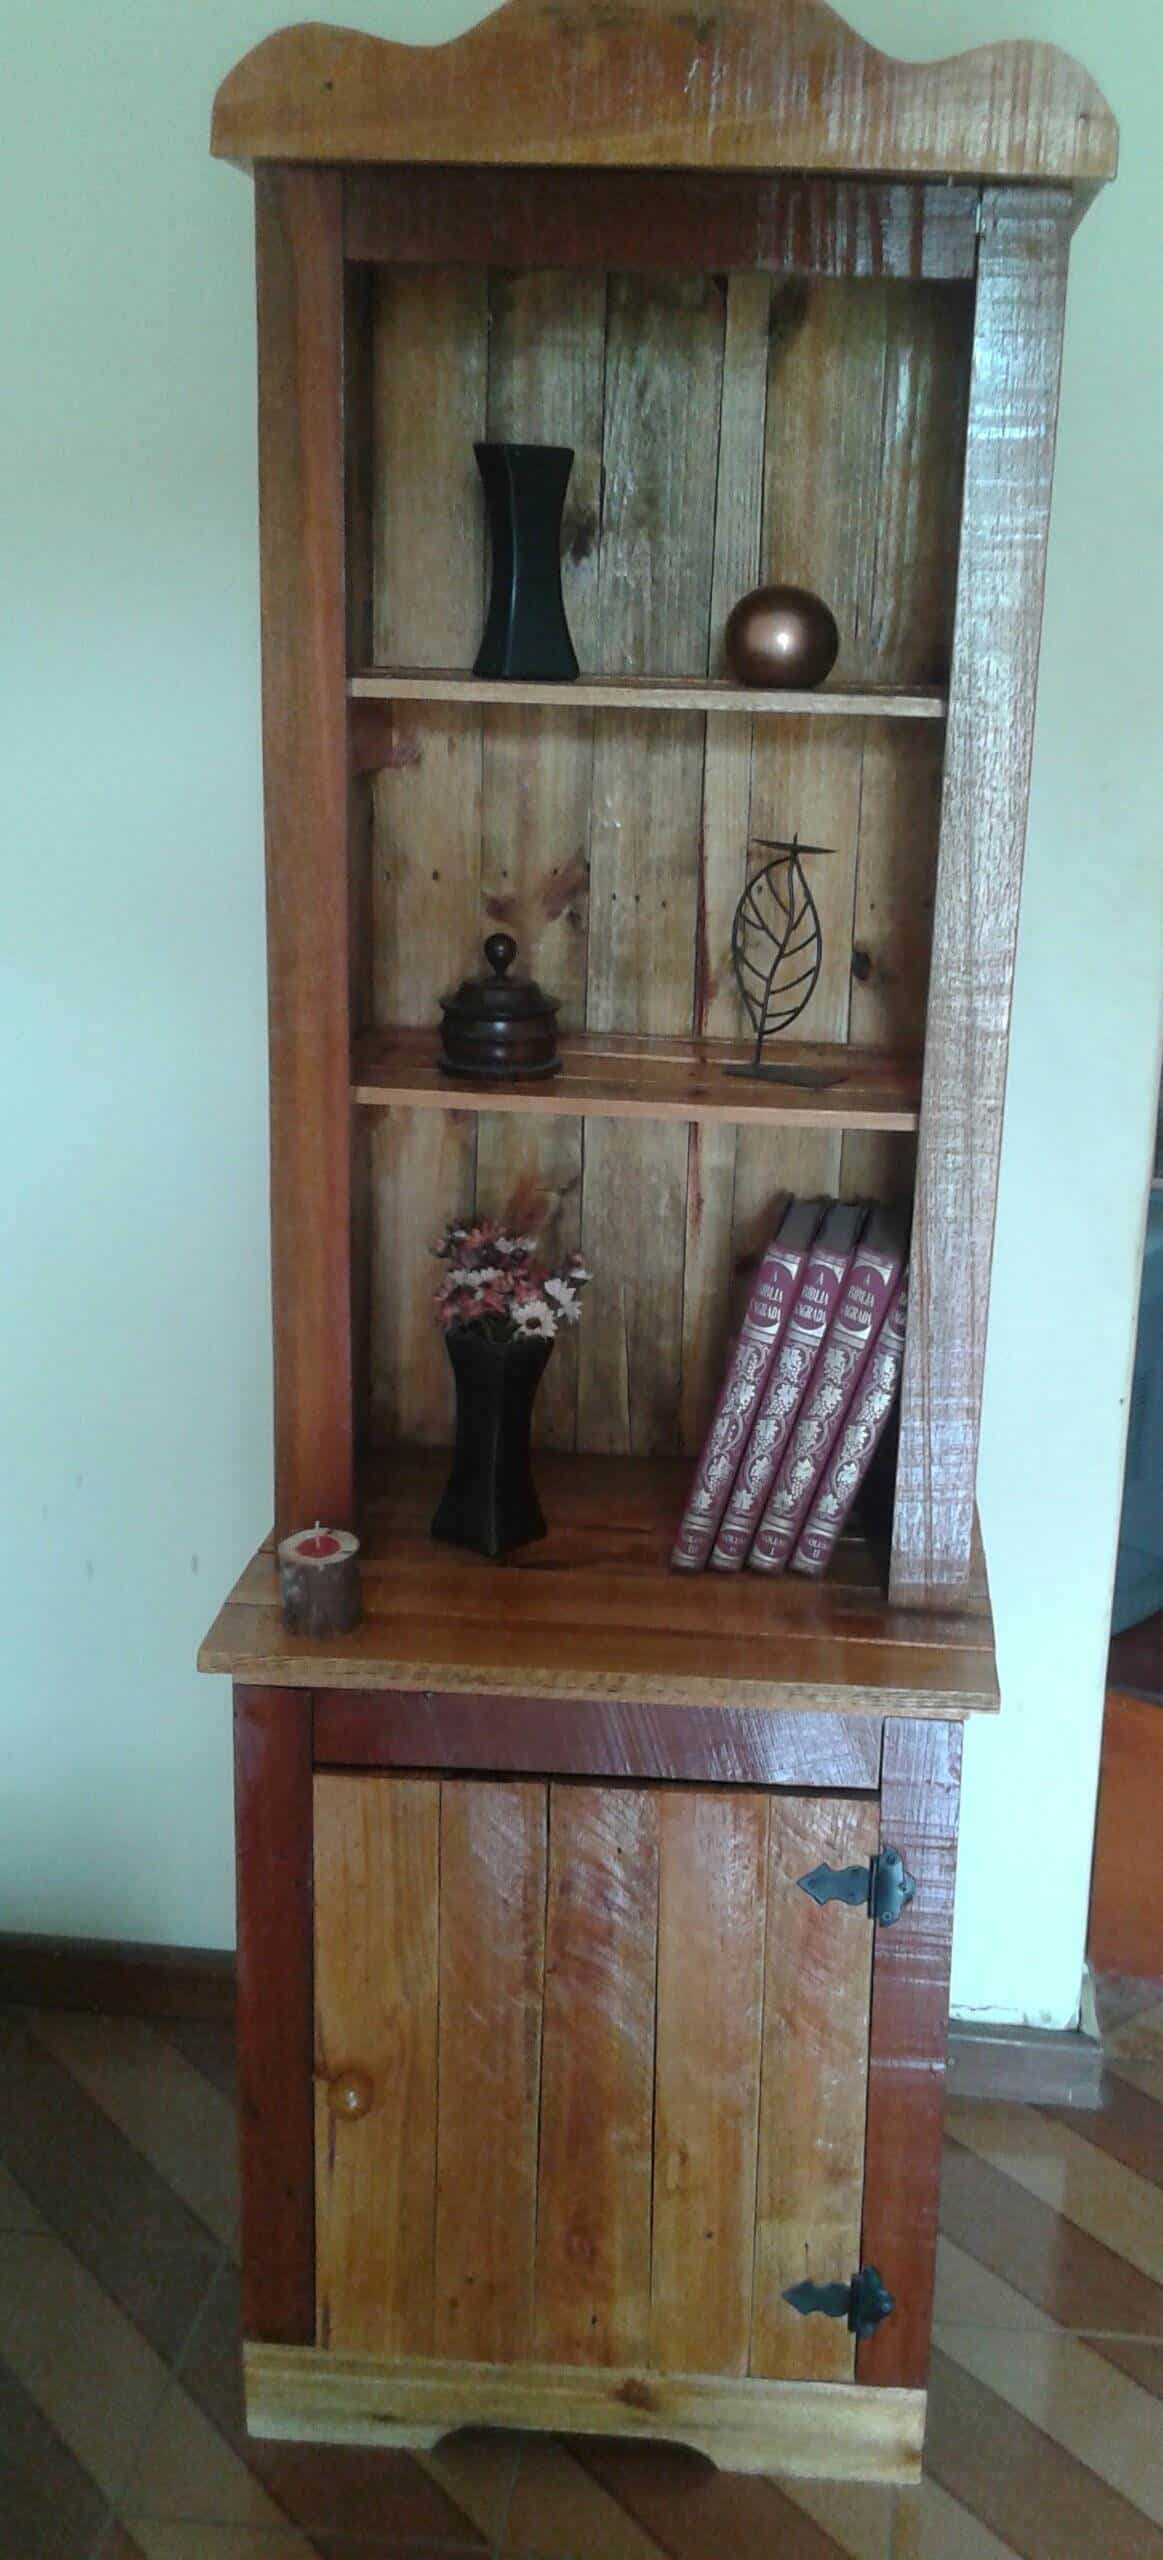 Charming Pallet Bookcase • Pallet Ideas • 1001 Pallets